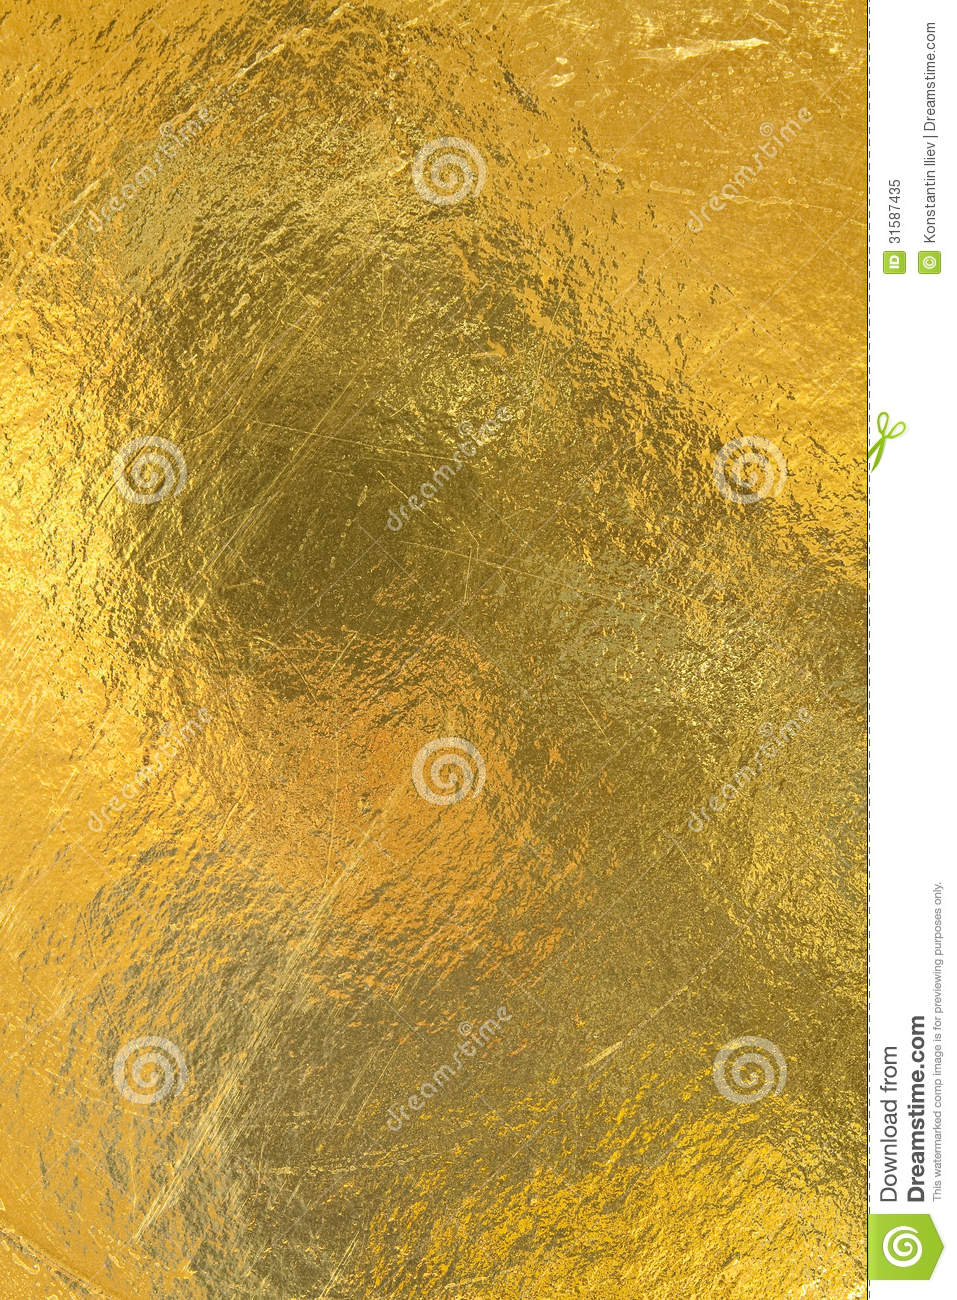 Sheet Of Gold Foil Royalty Free Stock Photo Image 31587435